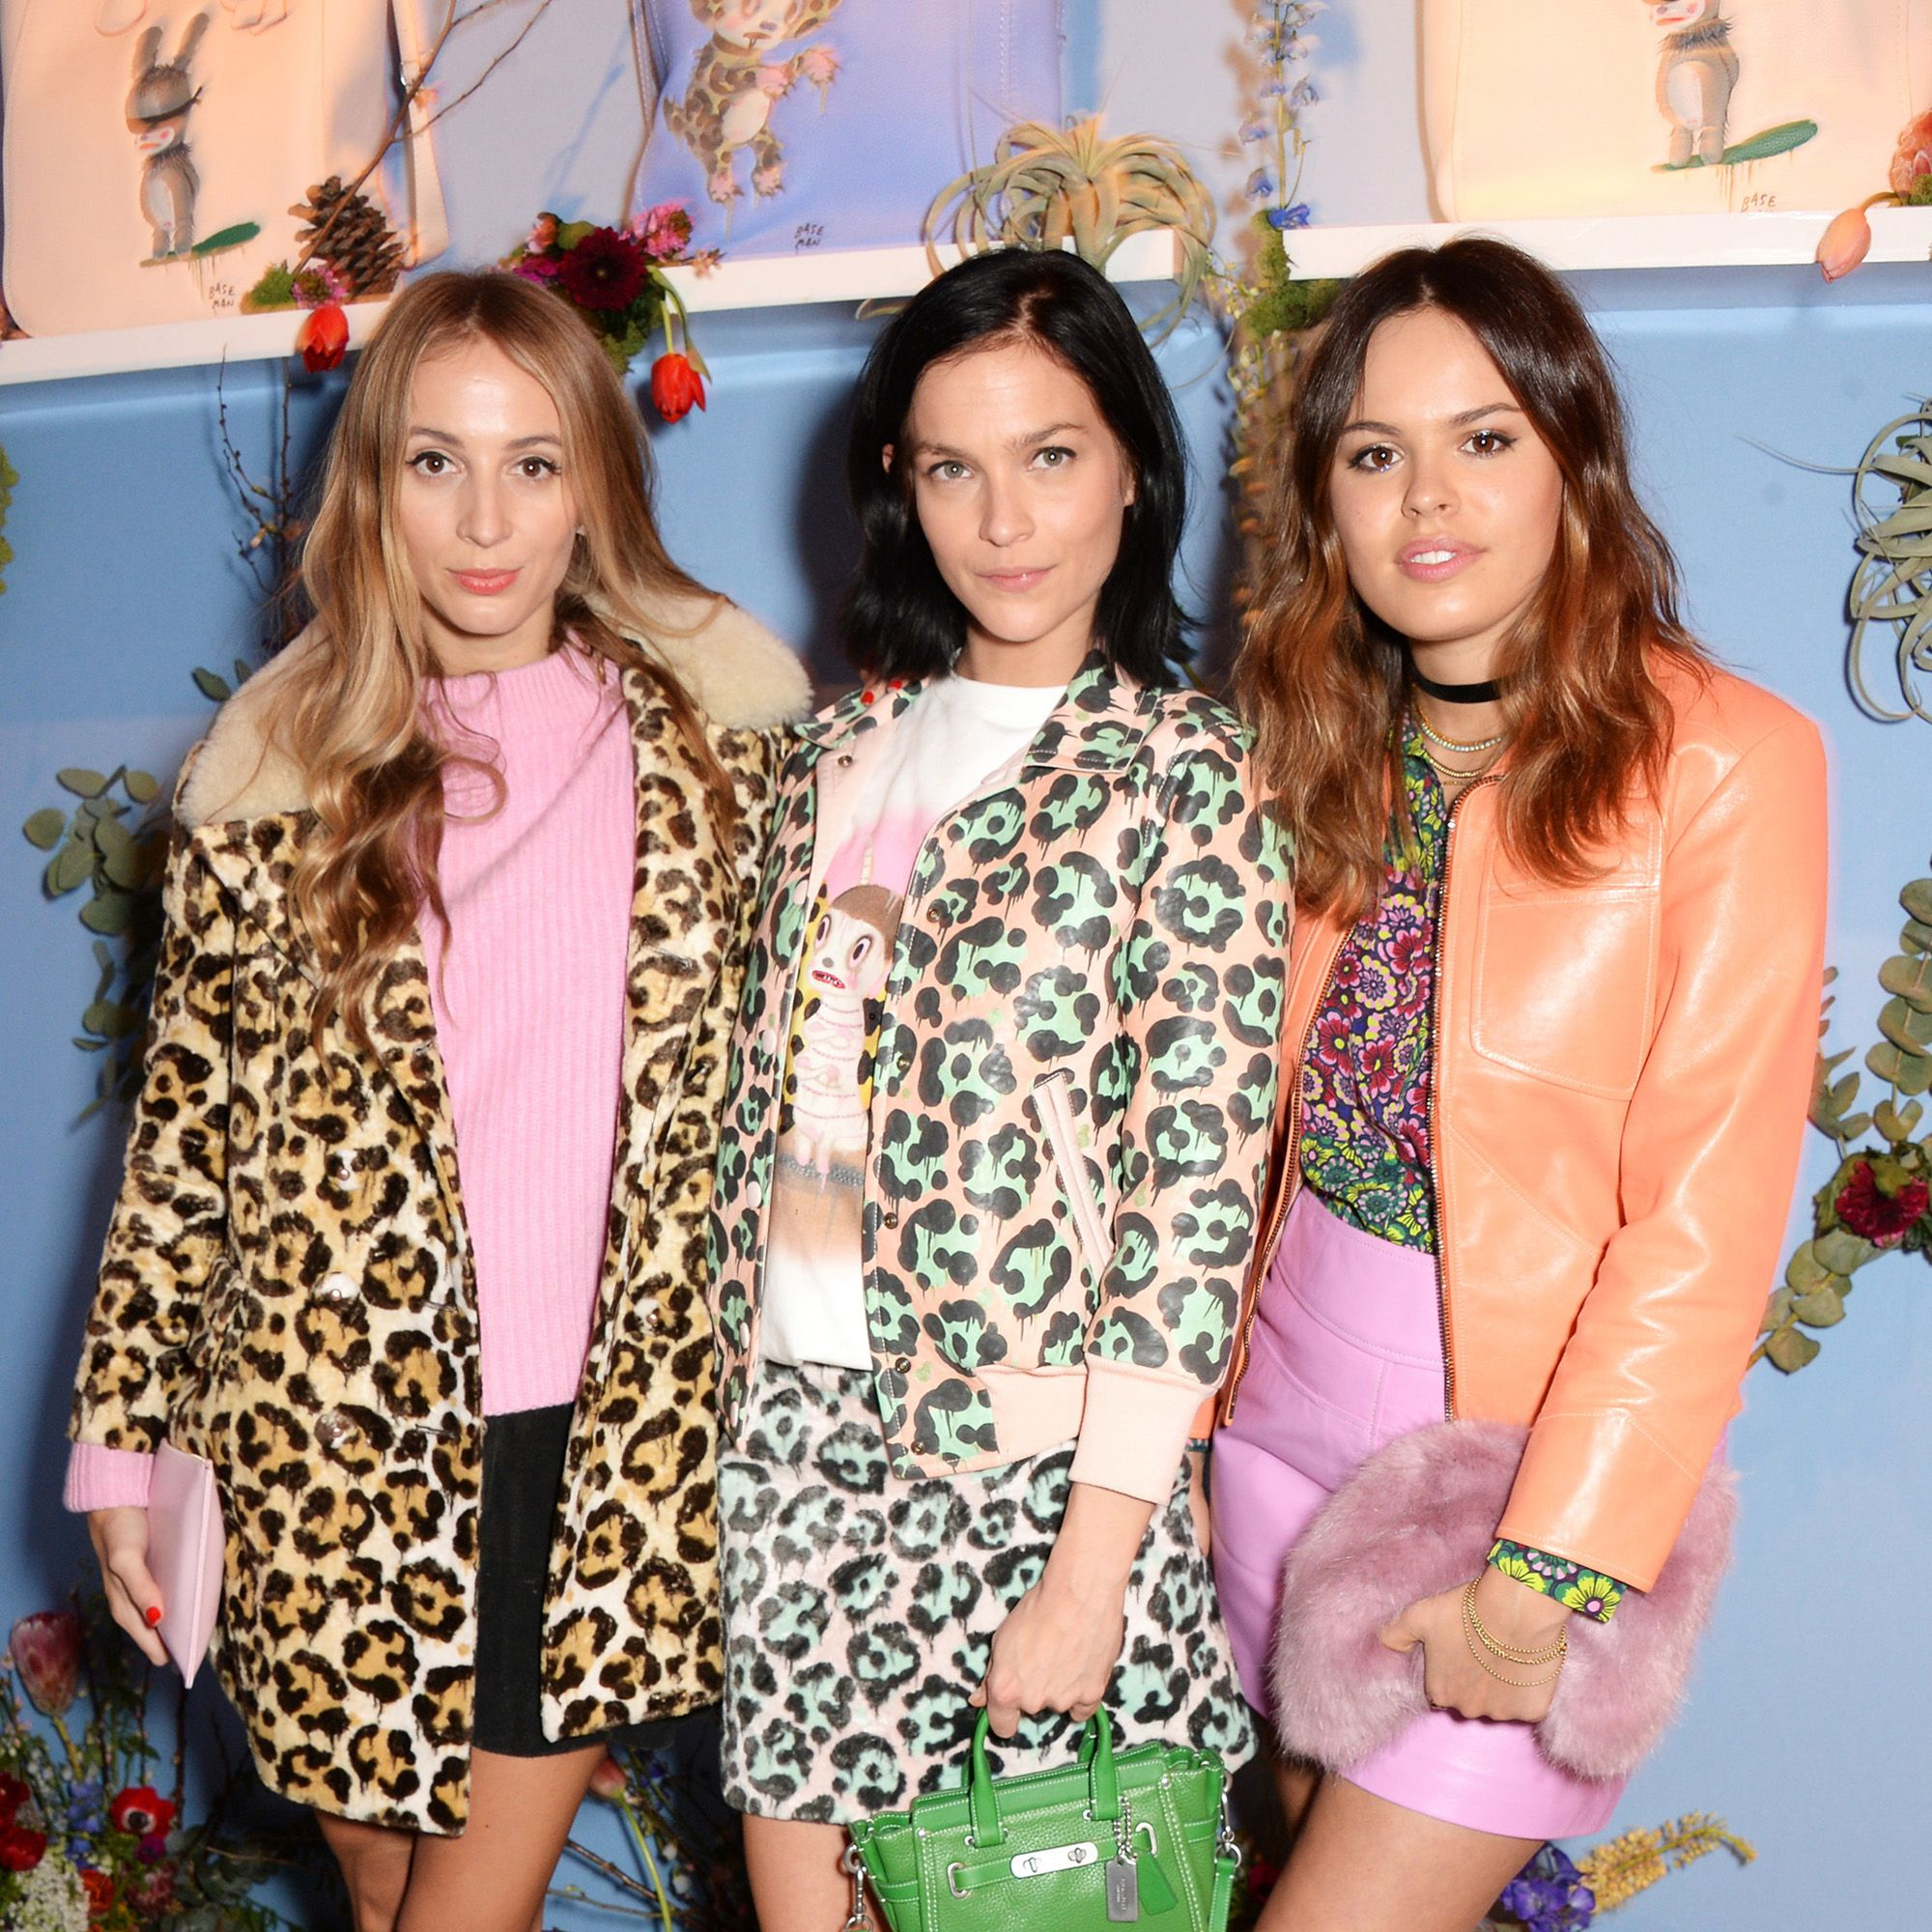 LONDON, ENGLAND - FEBRUARY 21:  (L to R) Harley Viera Newton, Leigh Lezark and Atlanta de Cadenet Taylor attend the Coach X Serpentine The Future Contemporaries Party at The Serpentine Sackler Gallery on February 21, 2015 in London, England.  (Photo by David M. Benett/Getty Images for Coach)